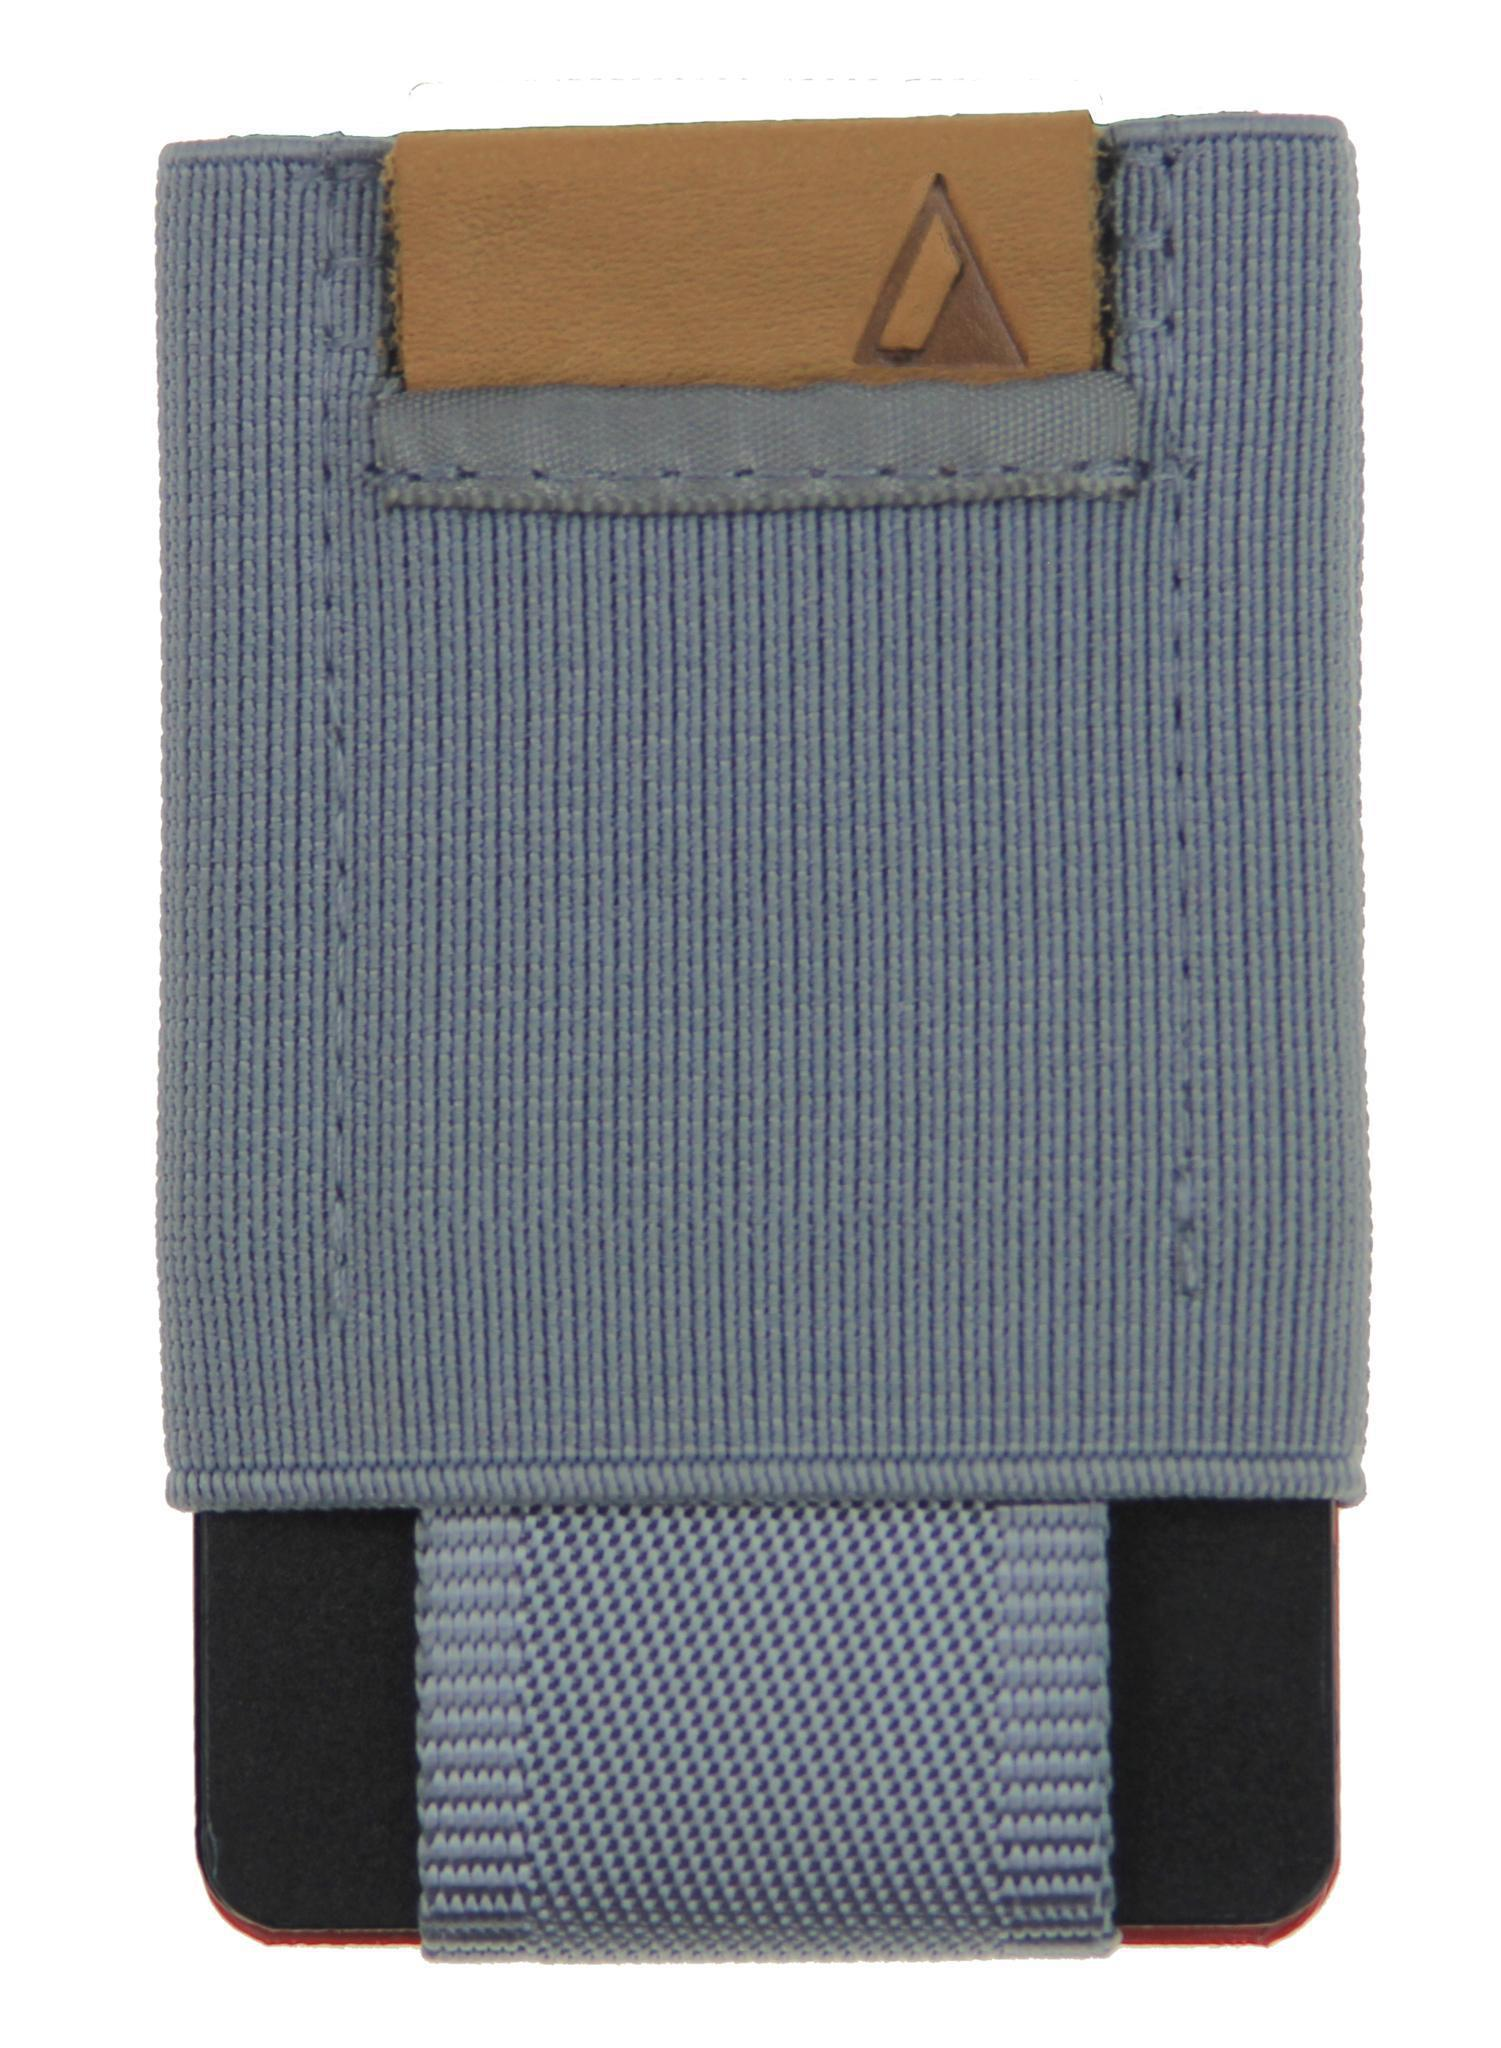 Wallet - NOMATIC BASICS Wallet Grey